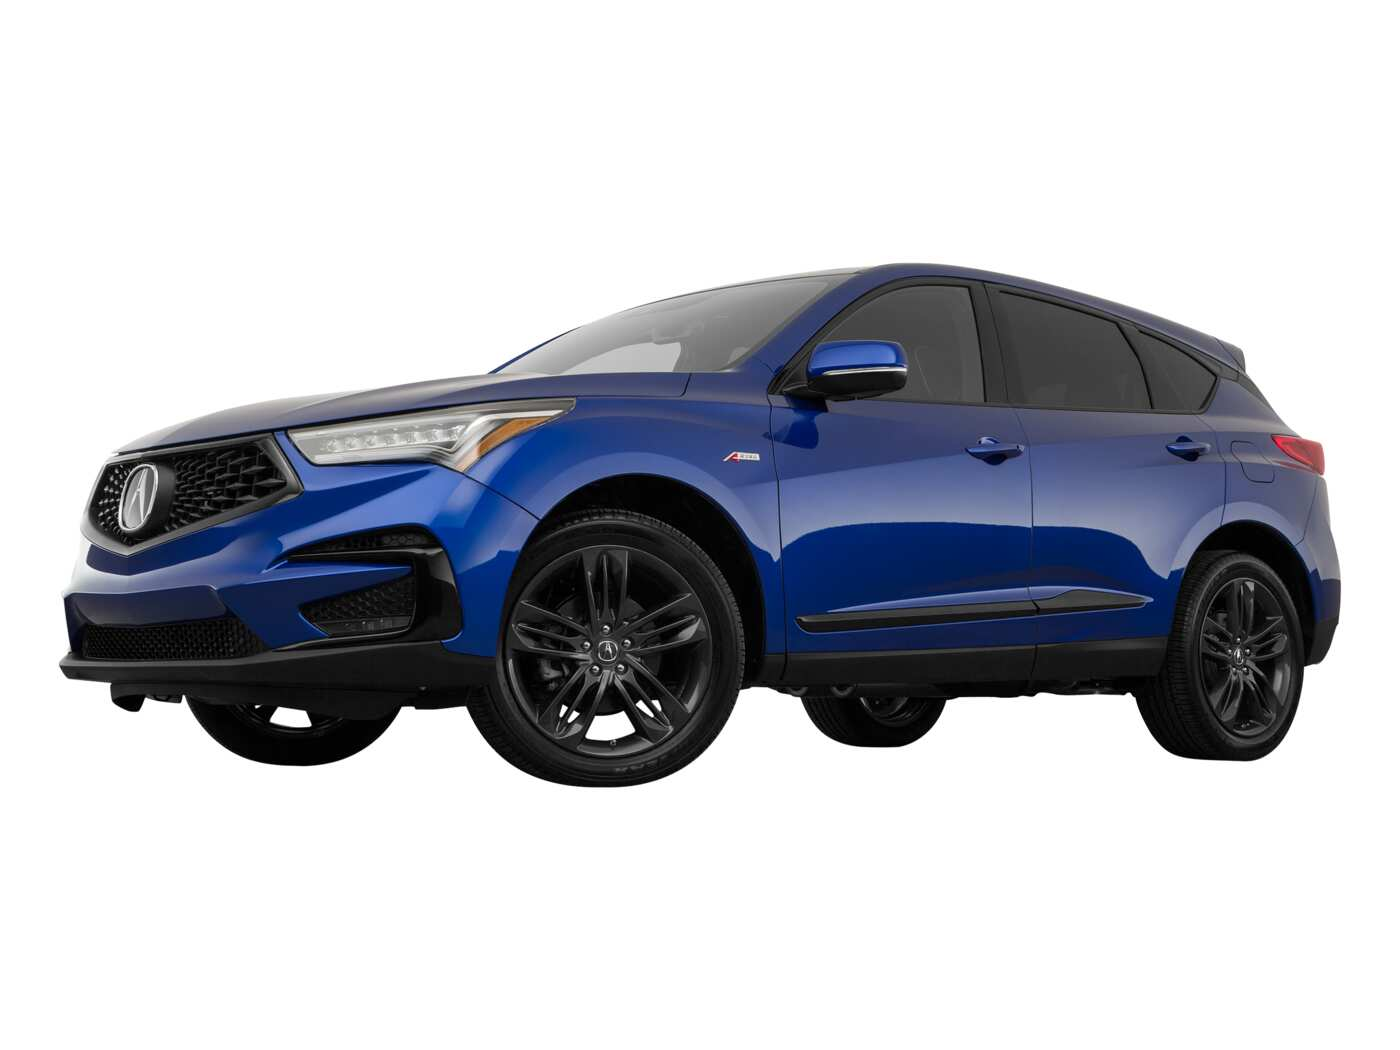 2020 acura rdx fwd with a-spec package | ideal auto 時代車行|时代车行